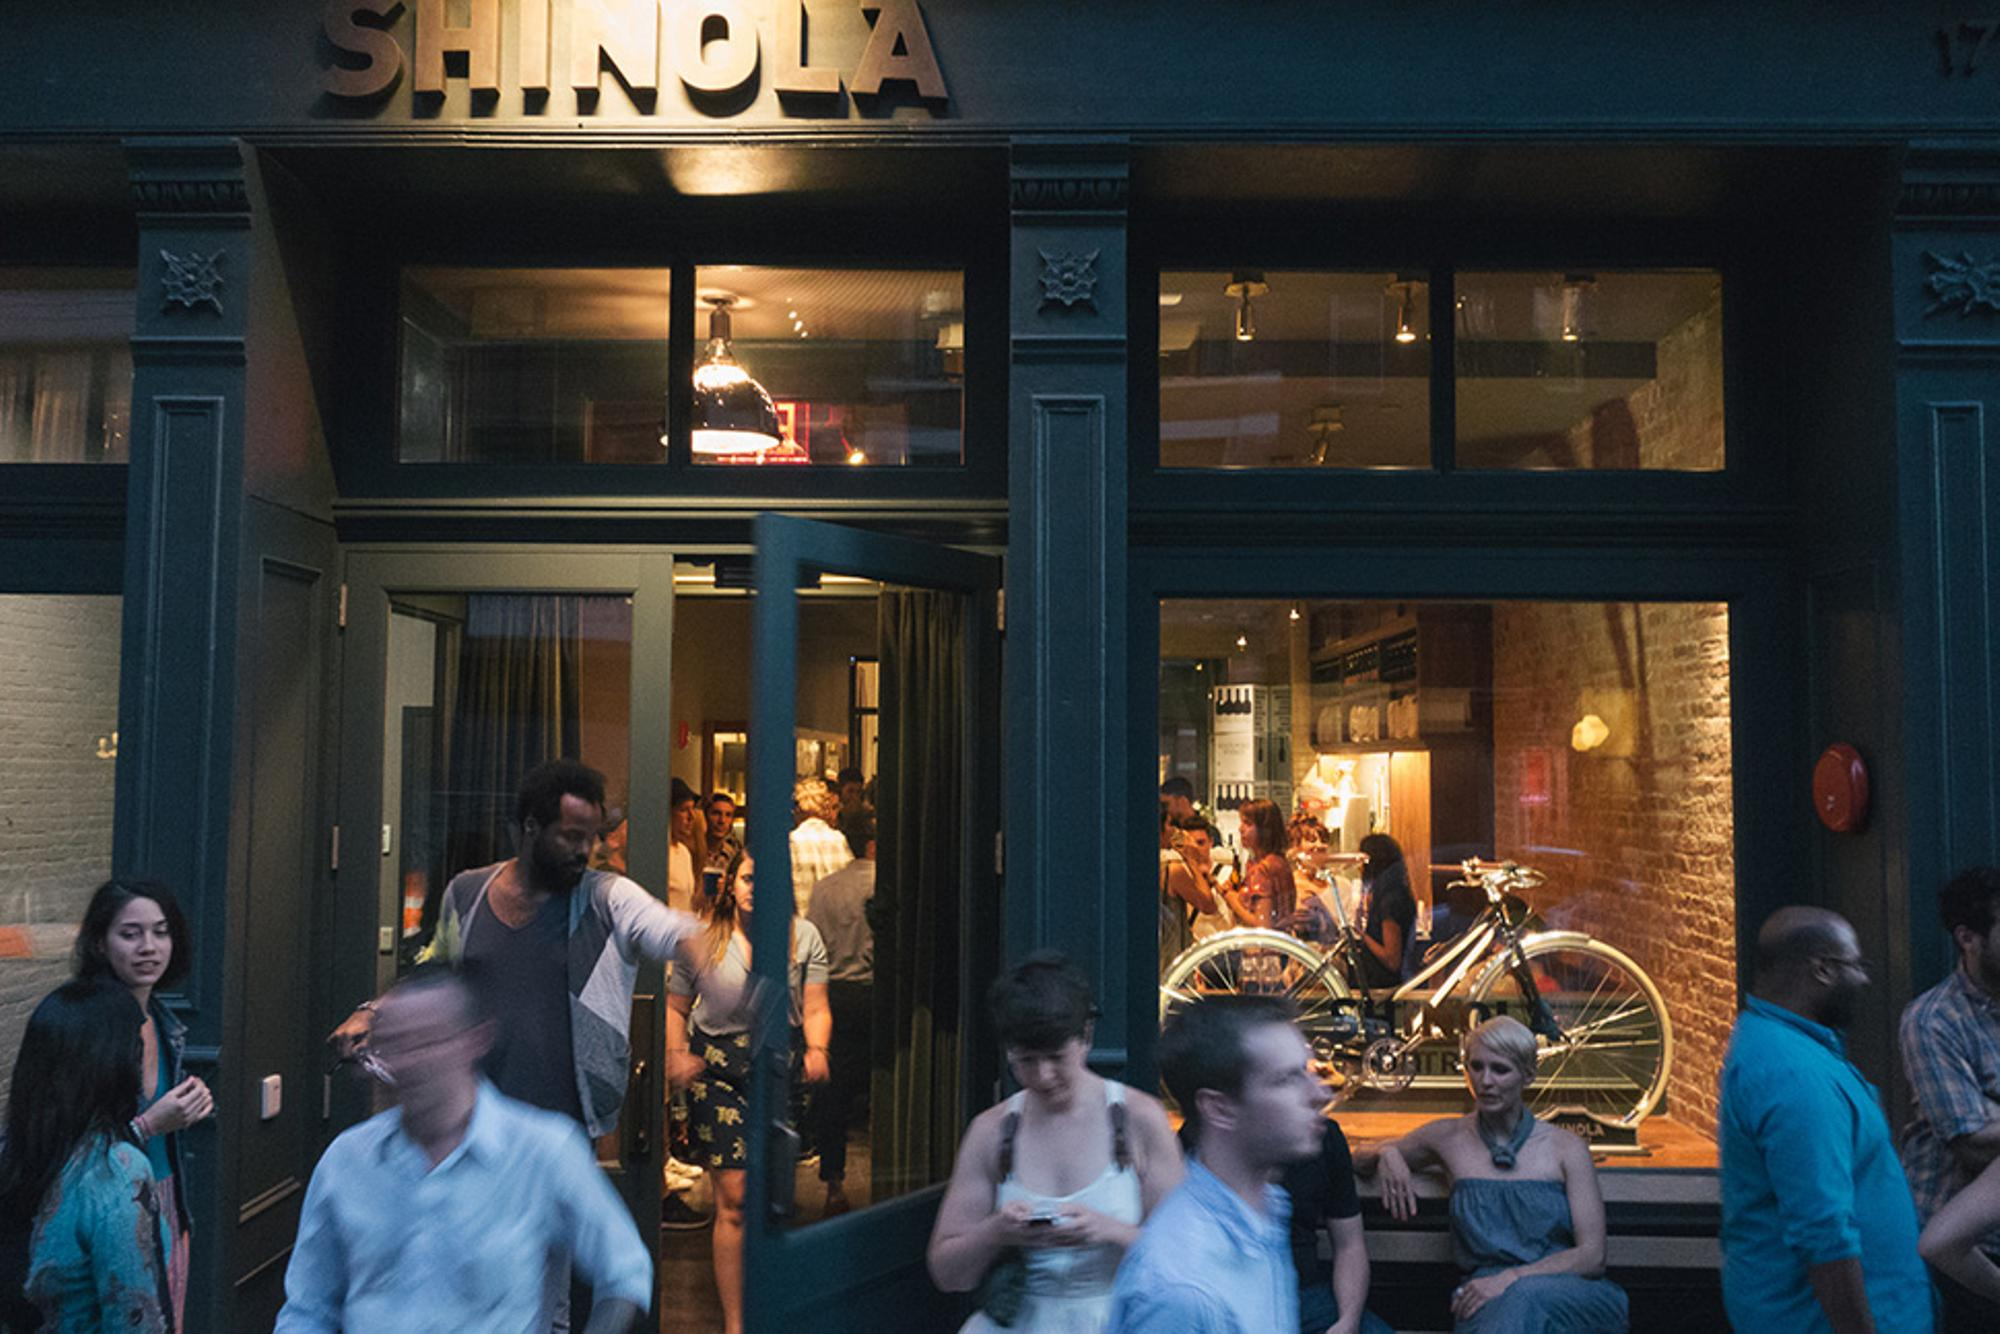 Shinola pop up